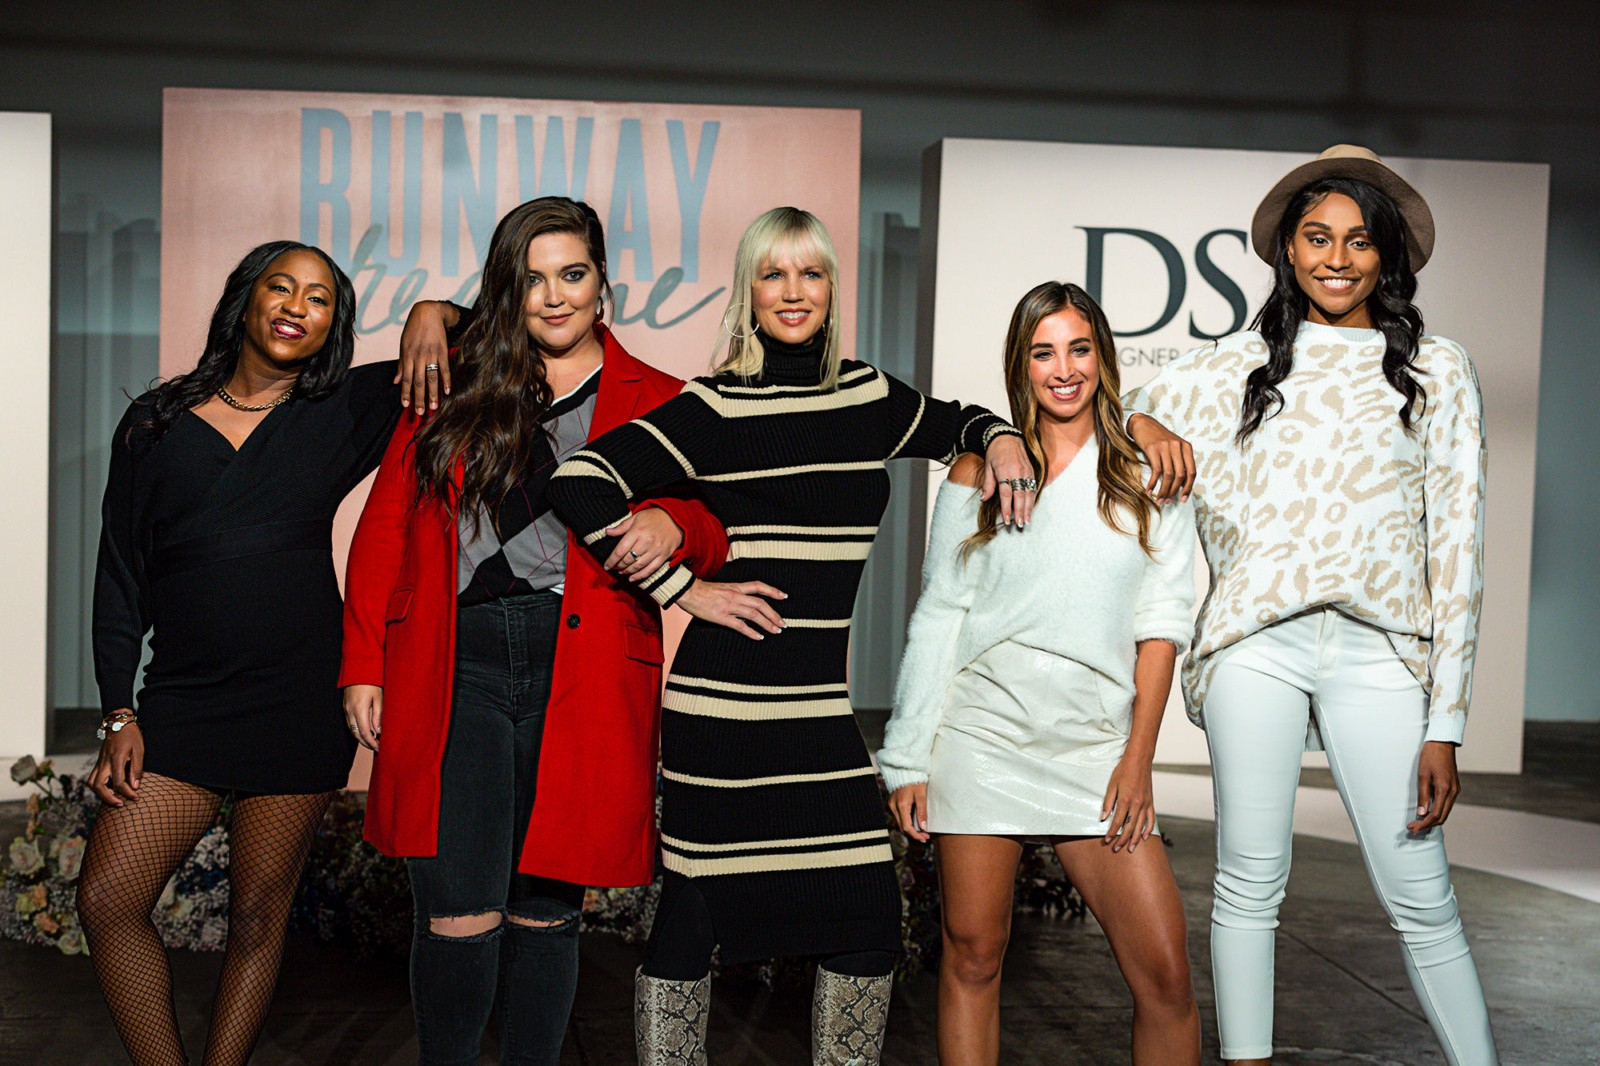 Group shot of the Fashion Show